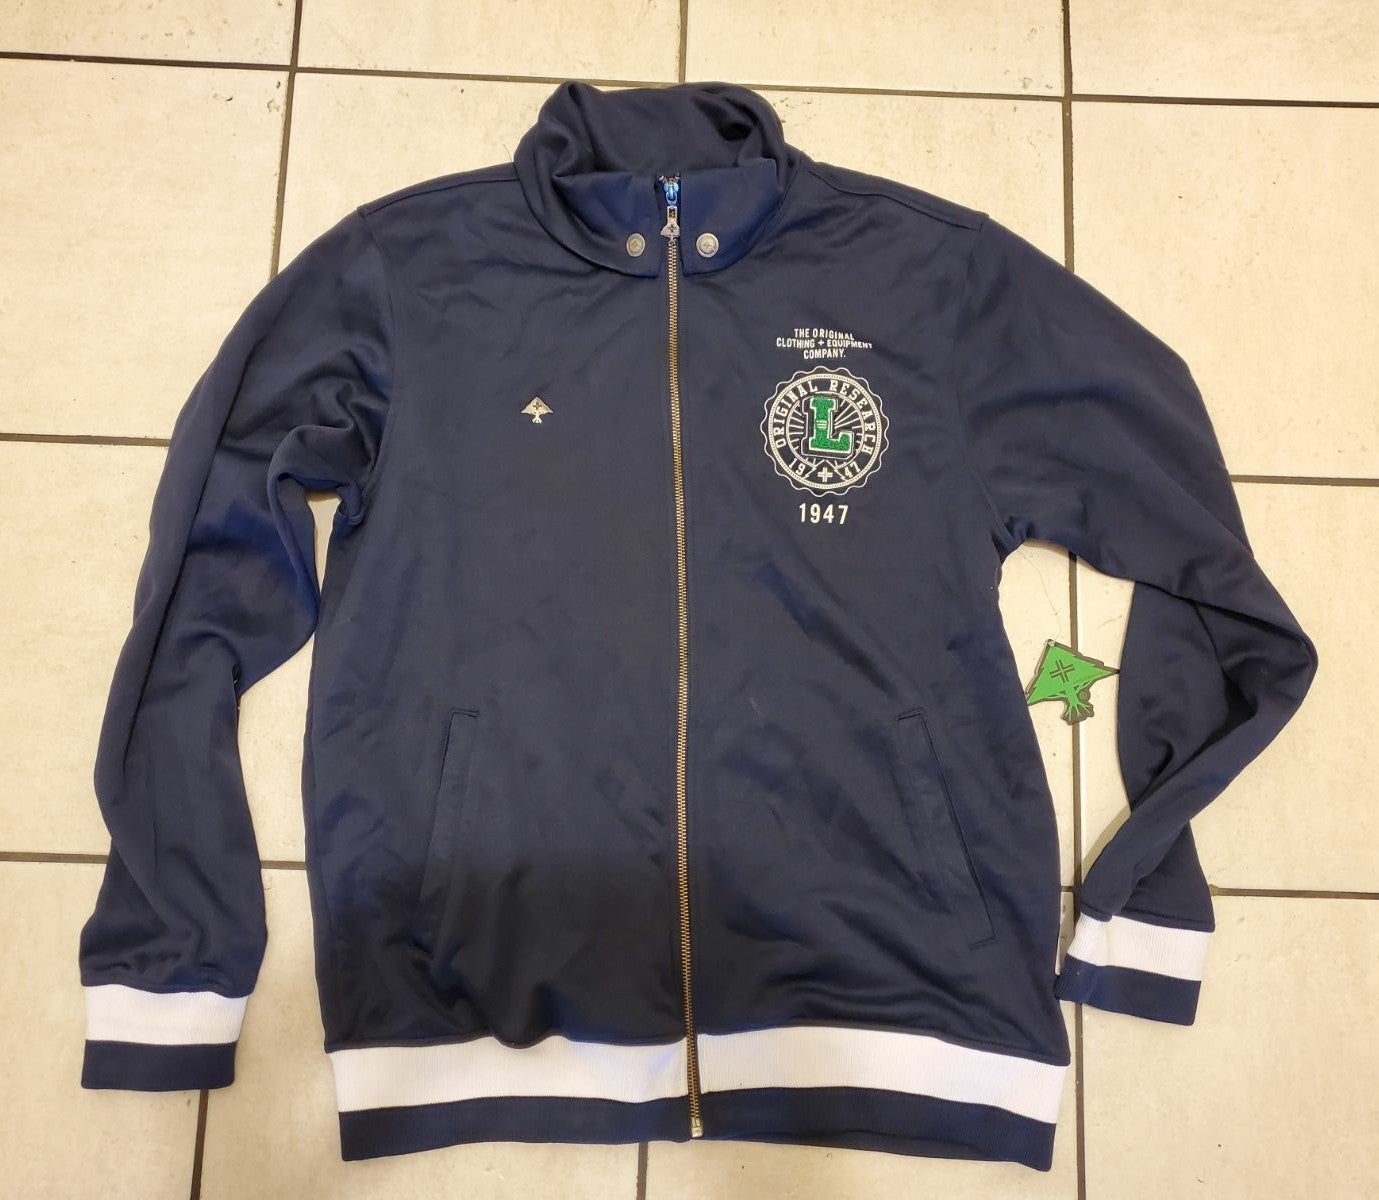 LRG Men's Track Jacket Size Large